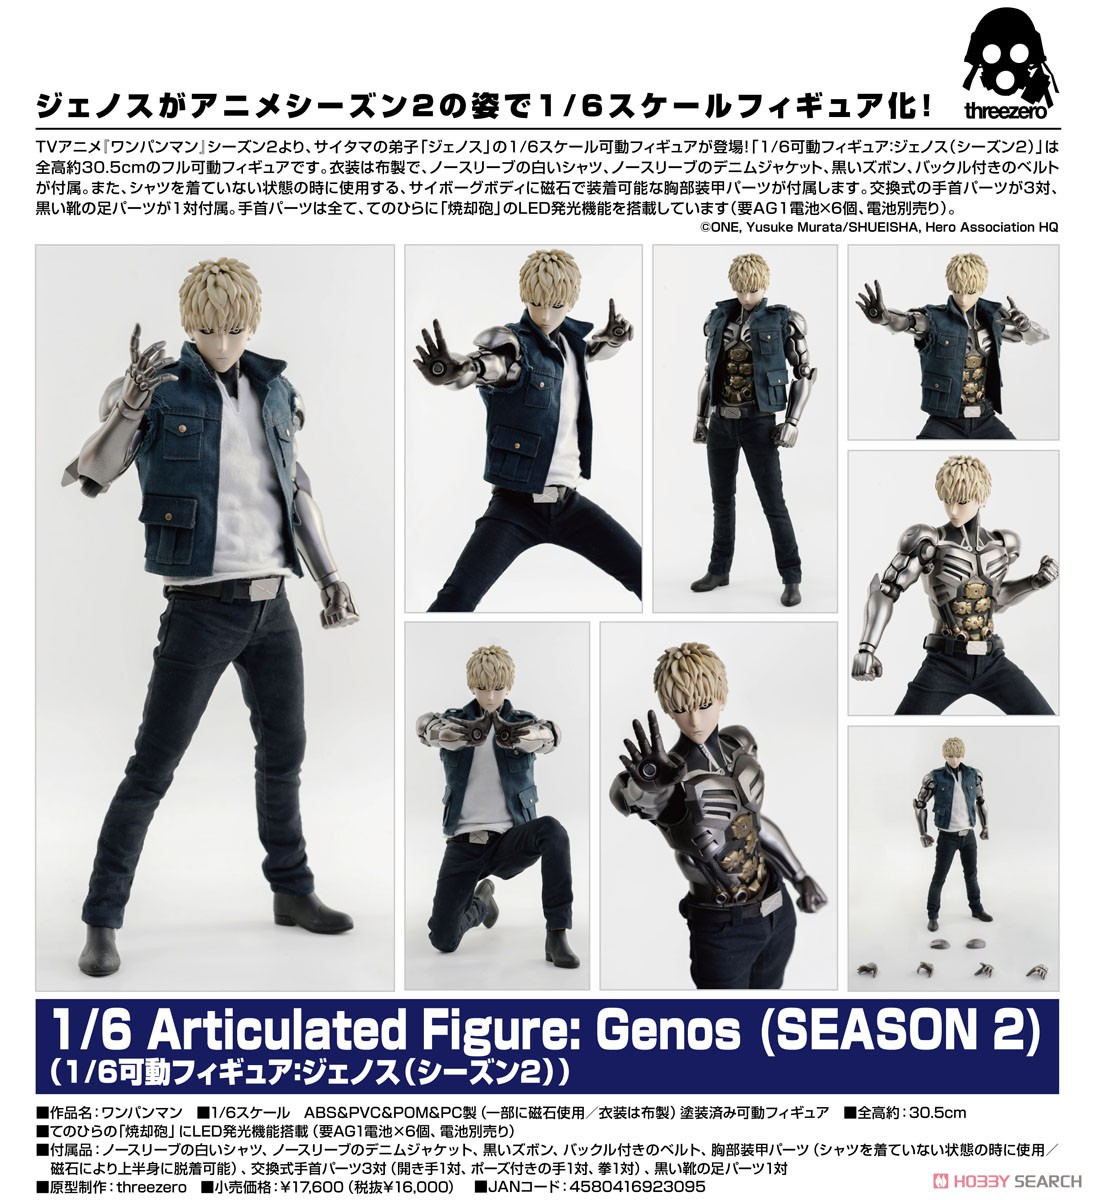 One-Punch Man 1/6 Articulated Figure: Genos (Season 2)